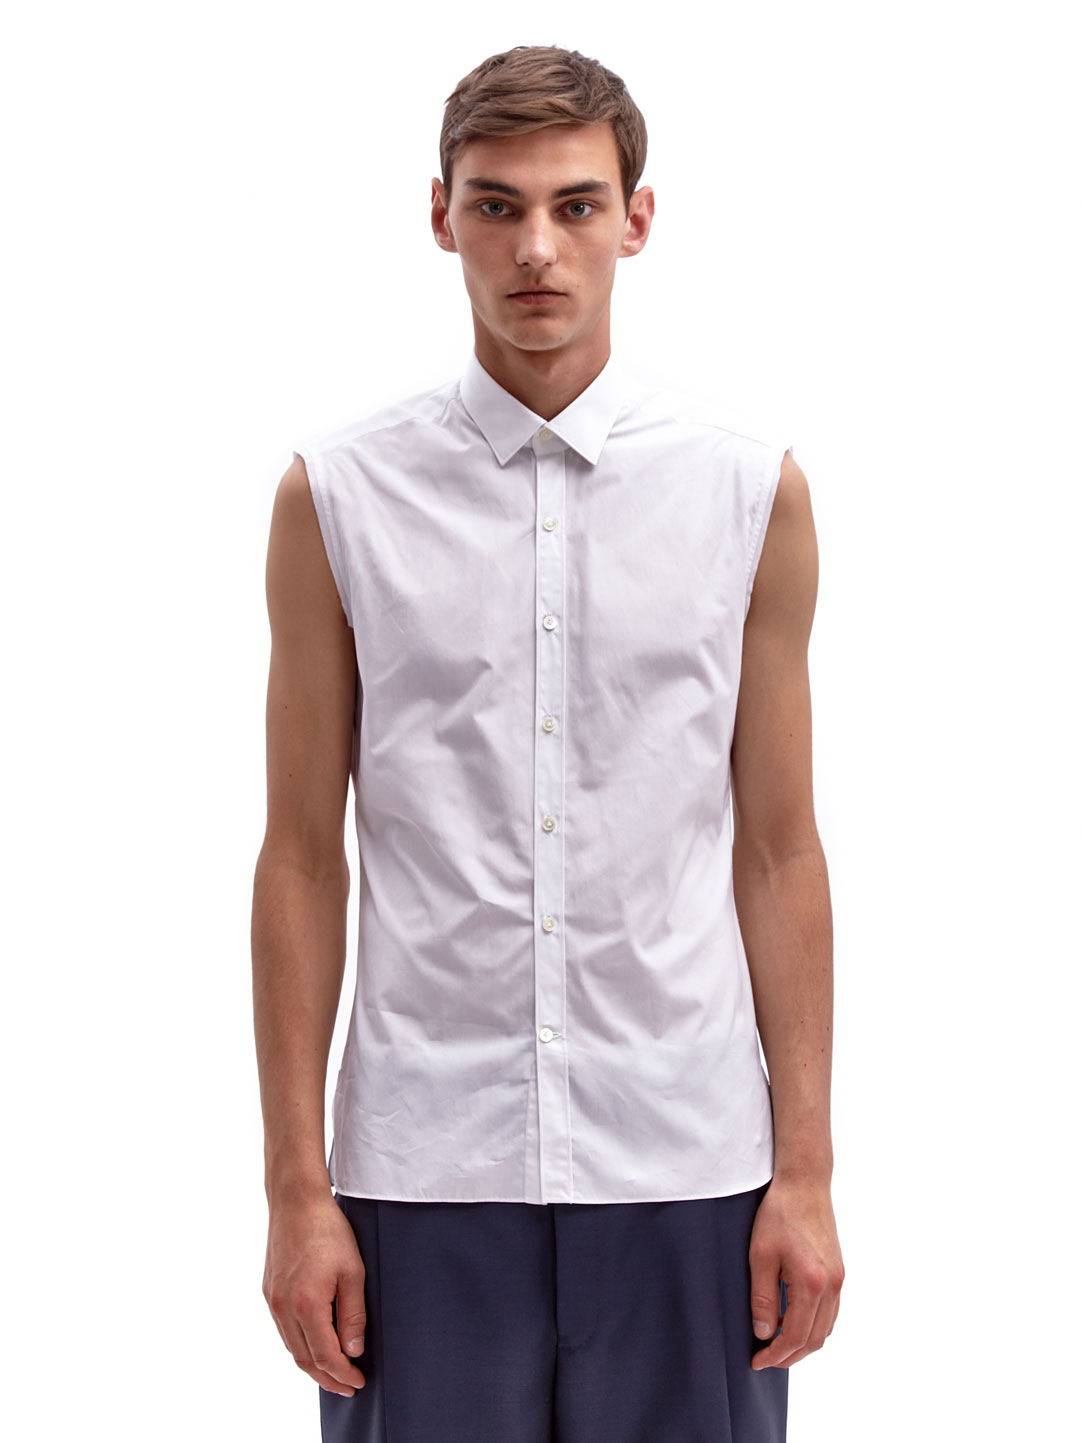 Lyst - Lanvin Mens Sleeveless Raw Edge Cotton Shirt in White for Men